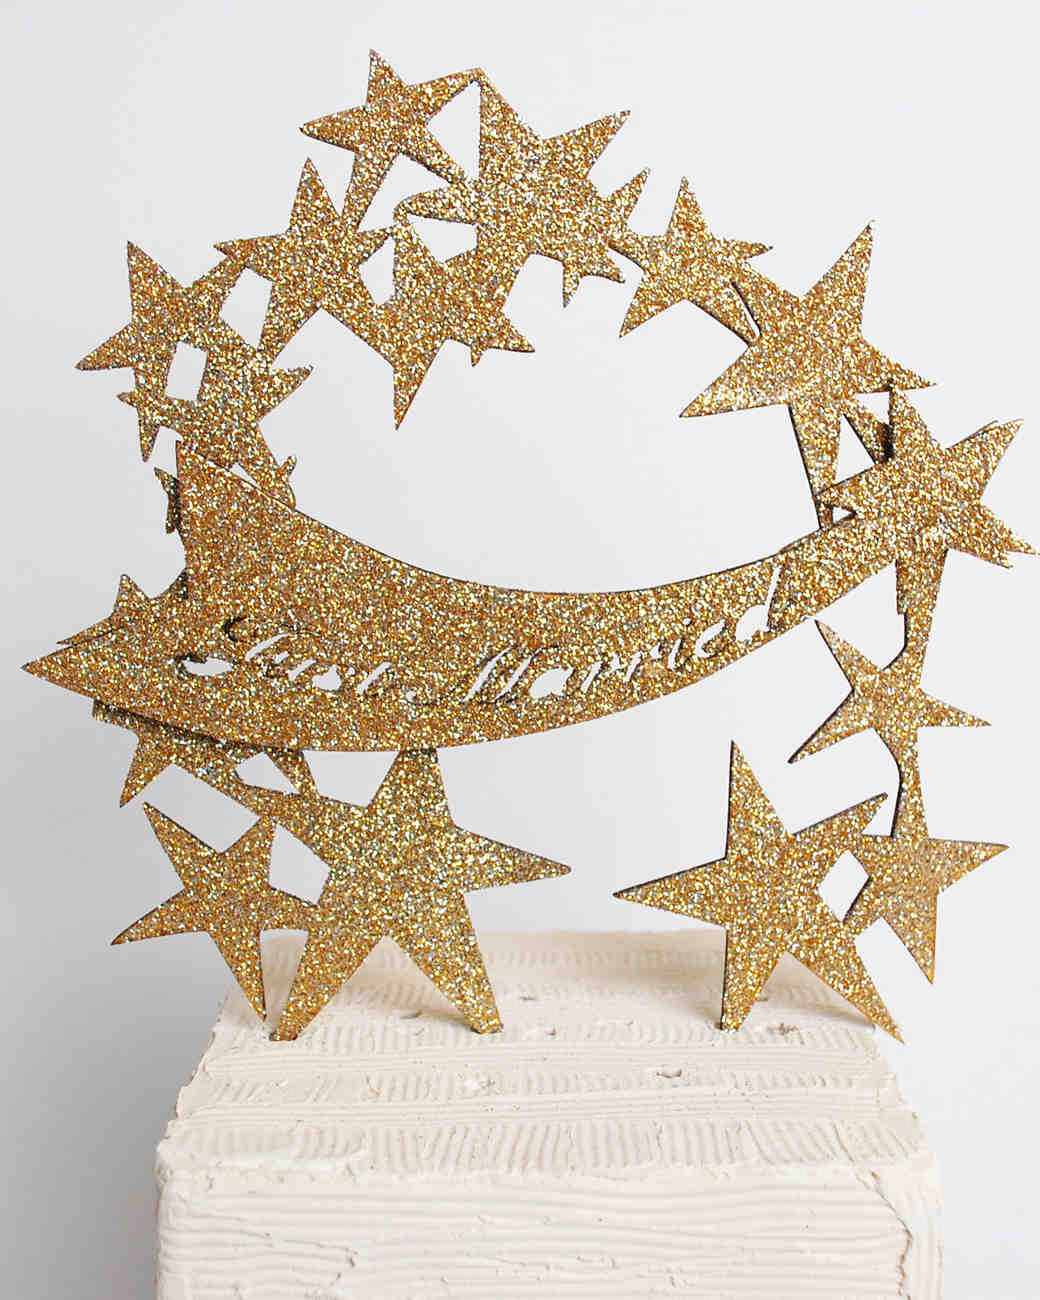 cake-toppers-madeline-trait-star-arch-0814.jpg